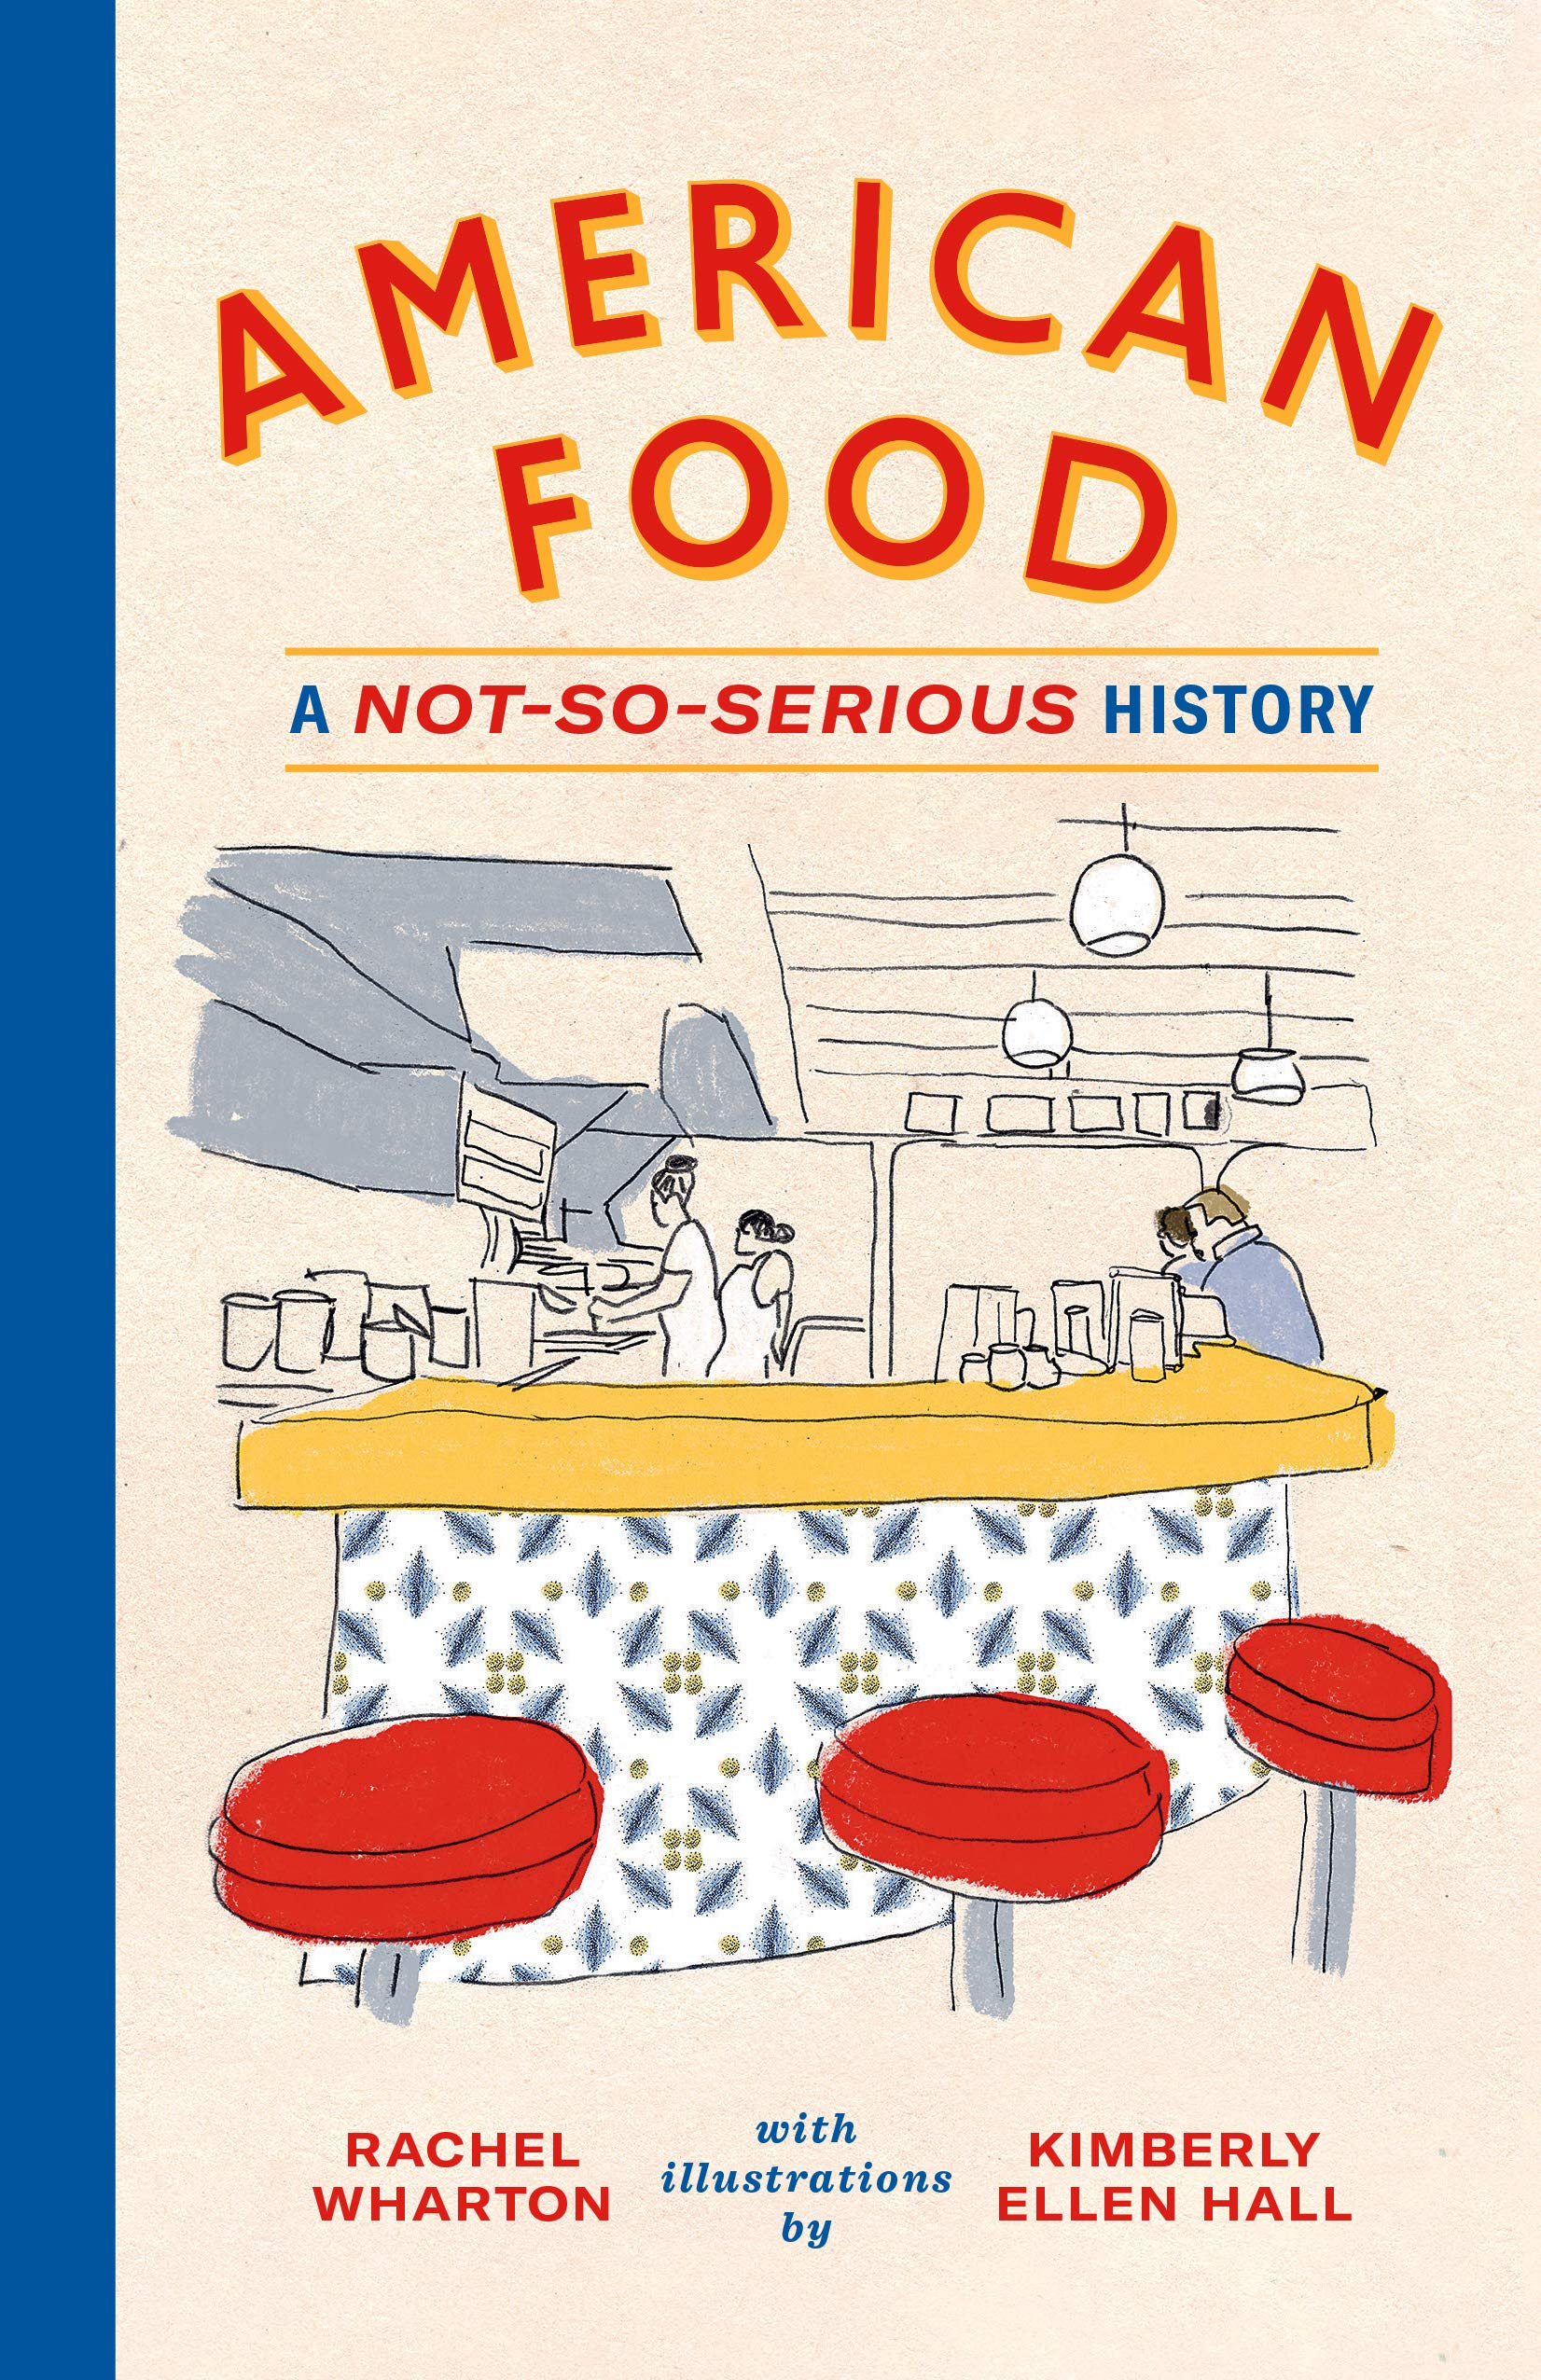 Image OfAmerican Food: A Not-So-Serious History (English Edition)